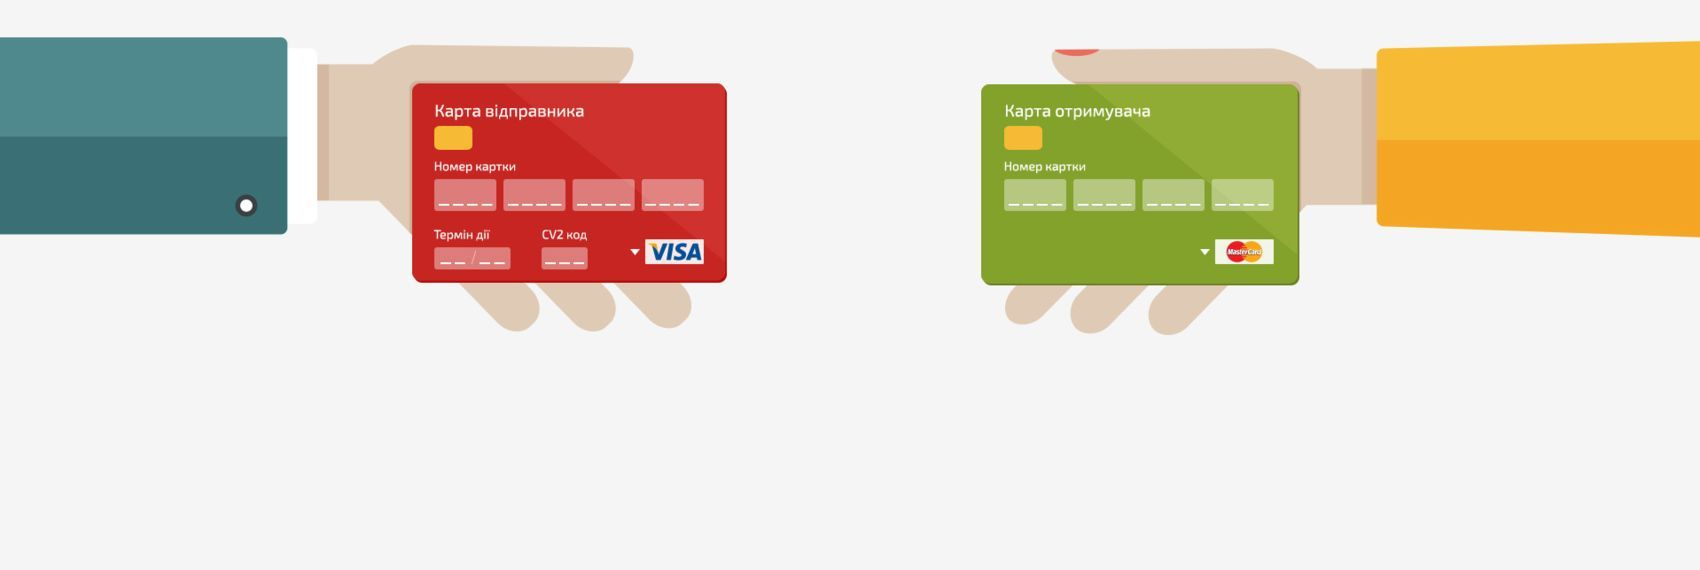 P2P system for Alfa-Bank